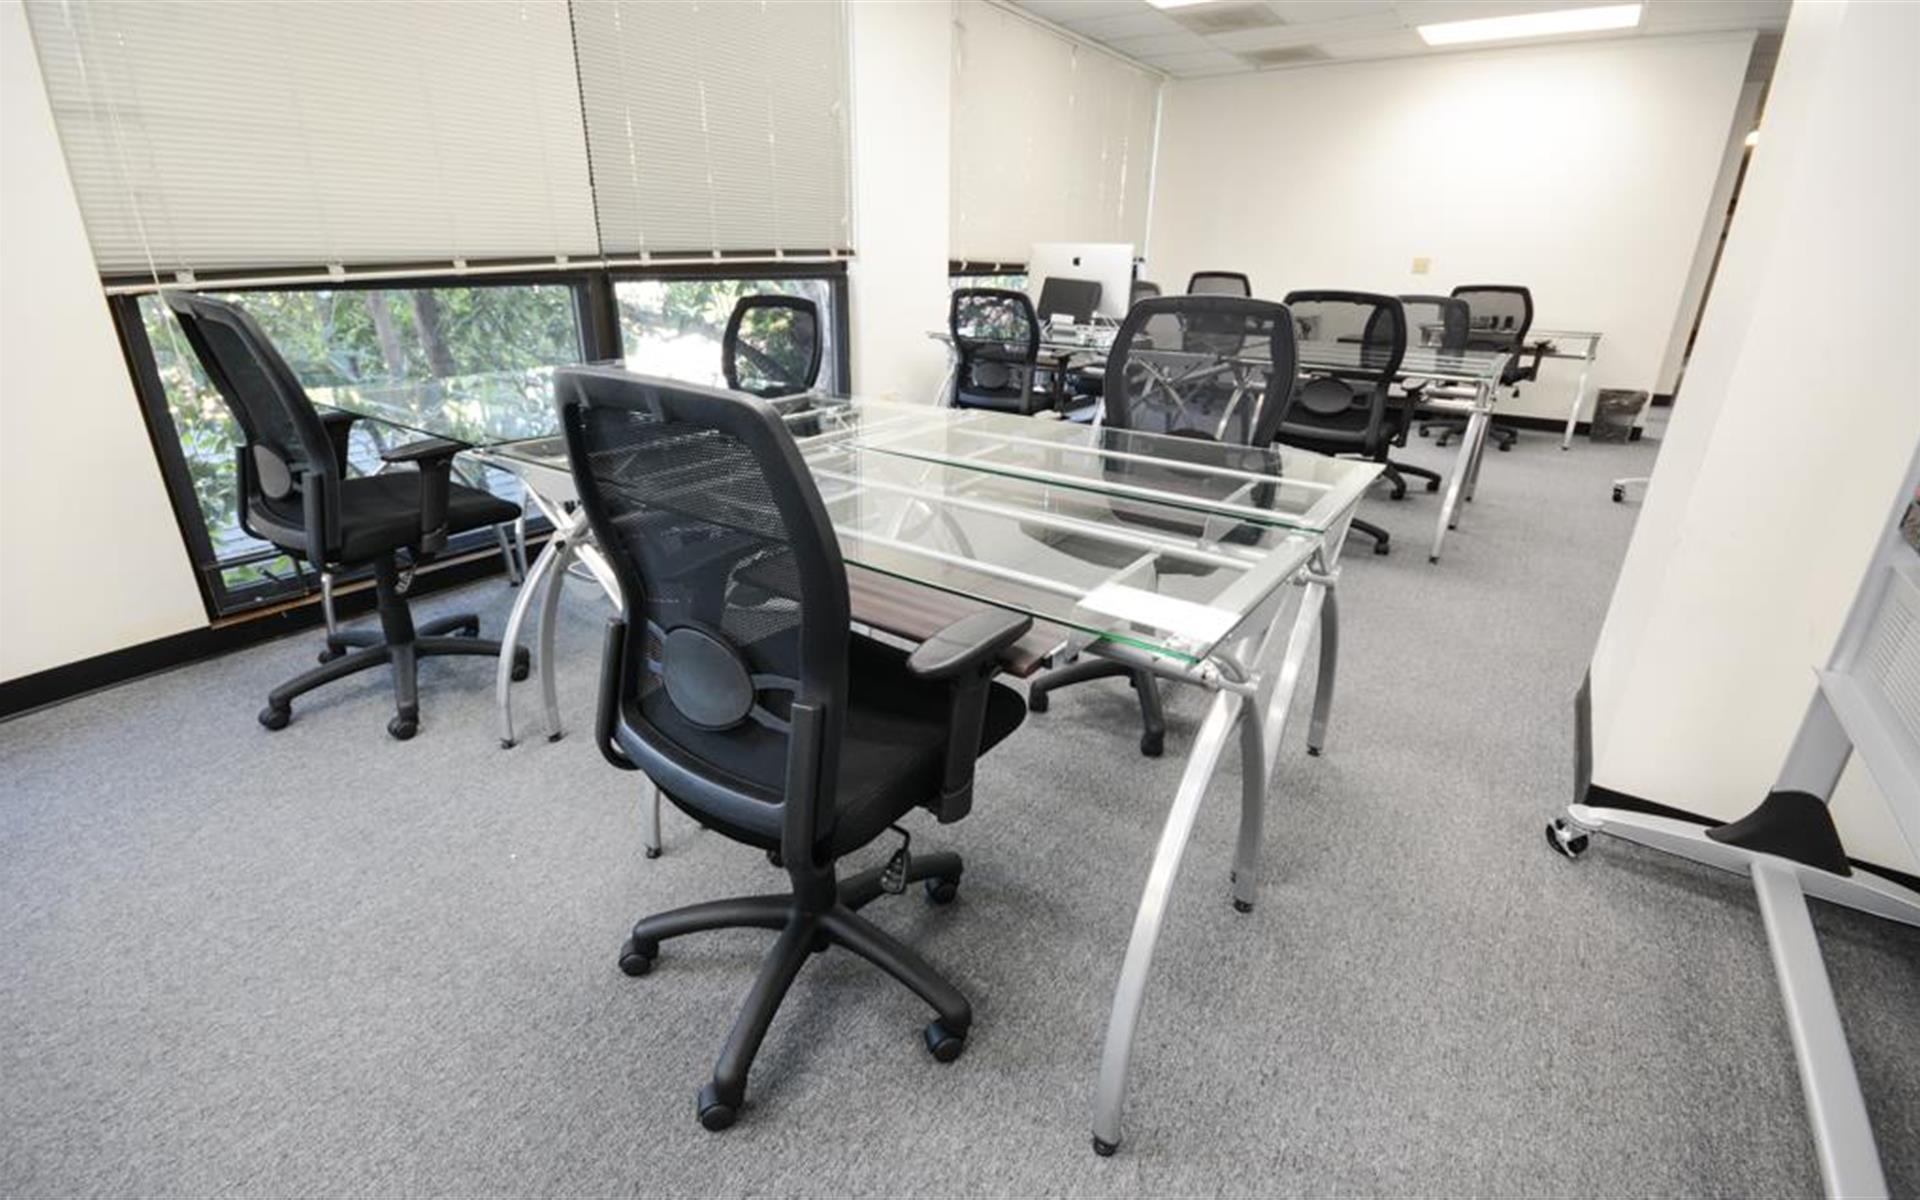 Start Smart Labs - Big Data Incubator/Co-Working Space - Dedicated Desk (Copy)